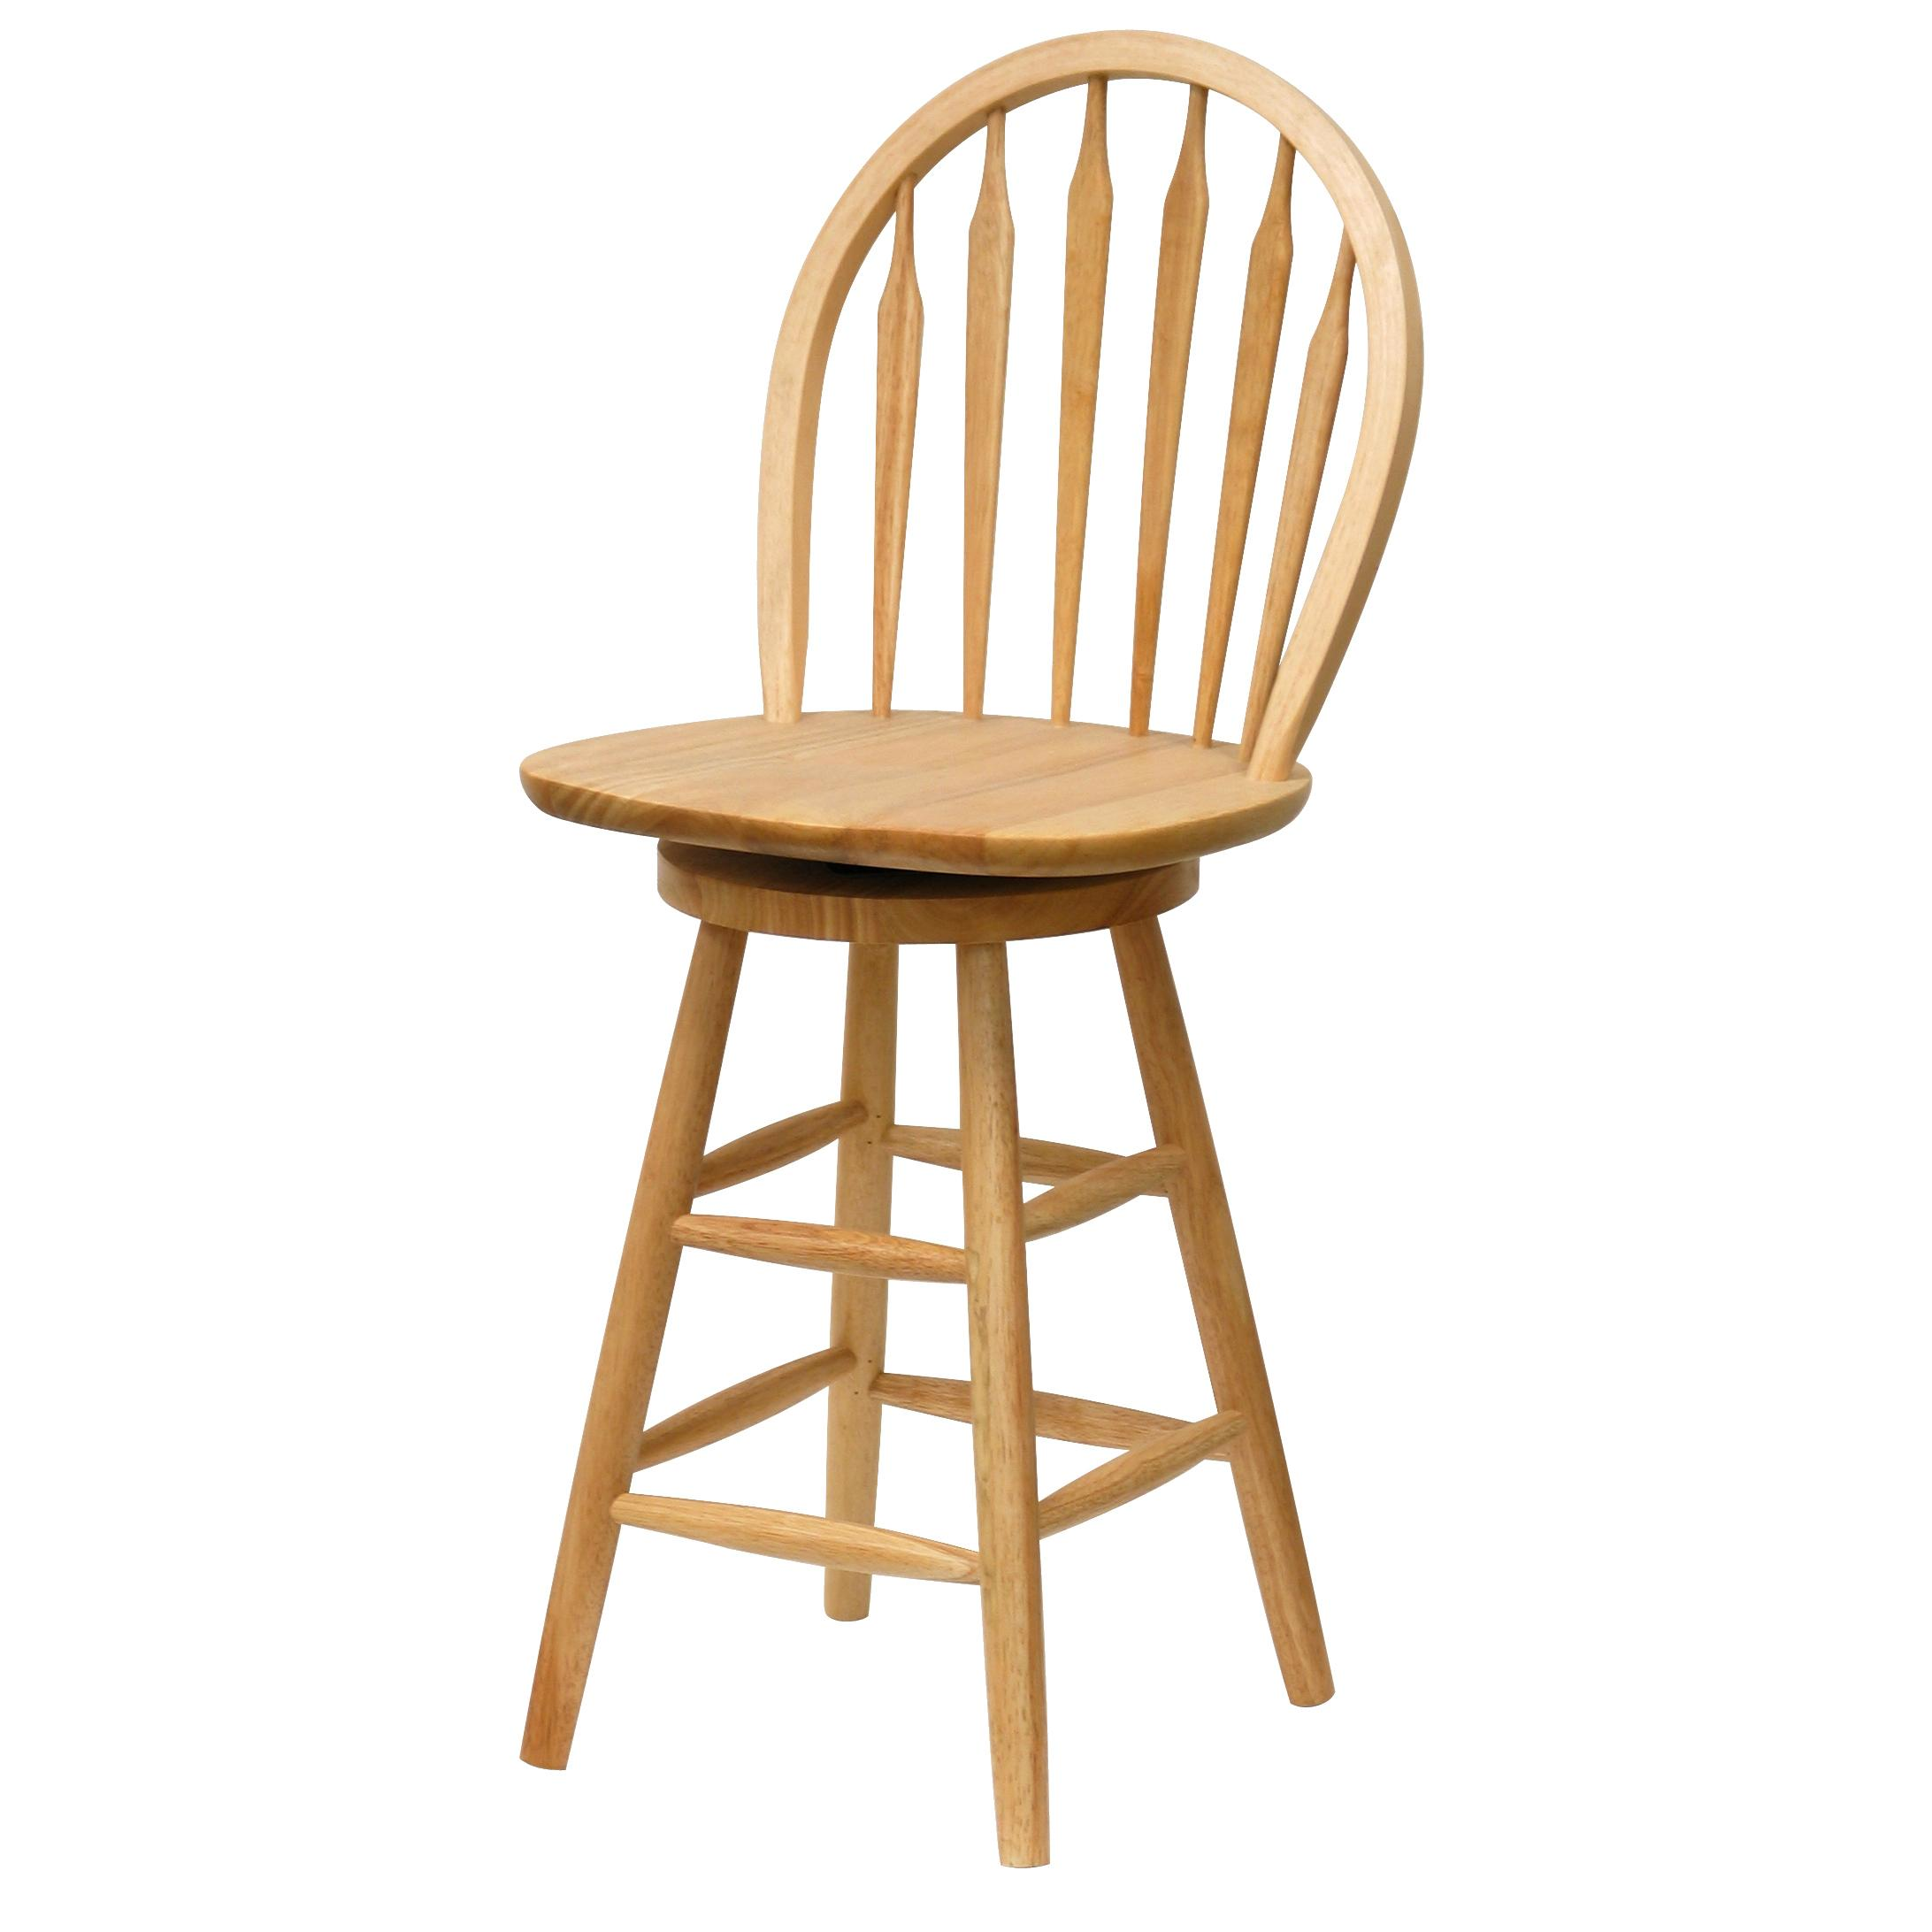 Winsome wood 24 inch windsor swivel seat bar stool